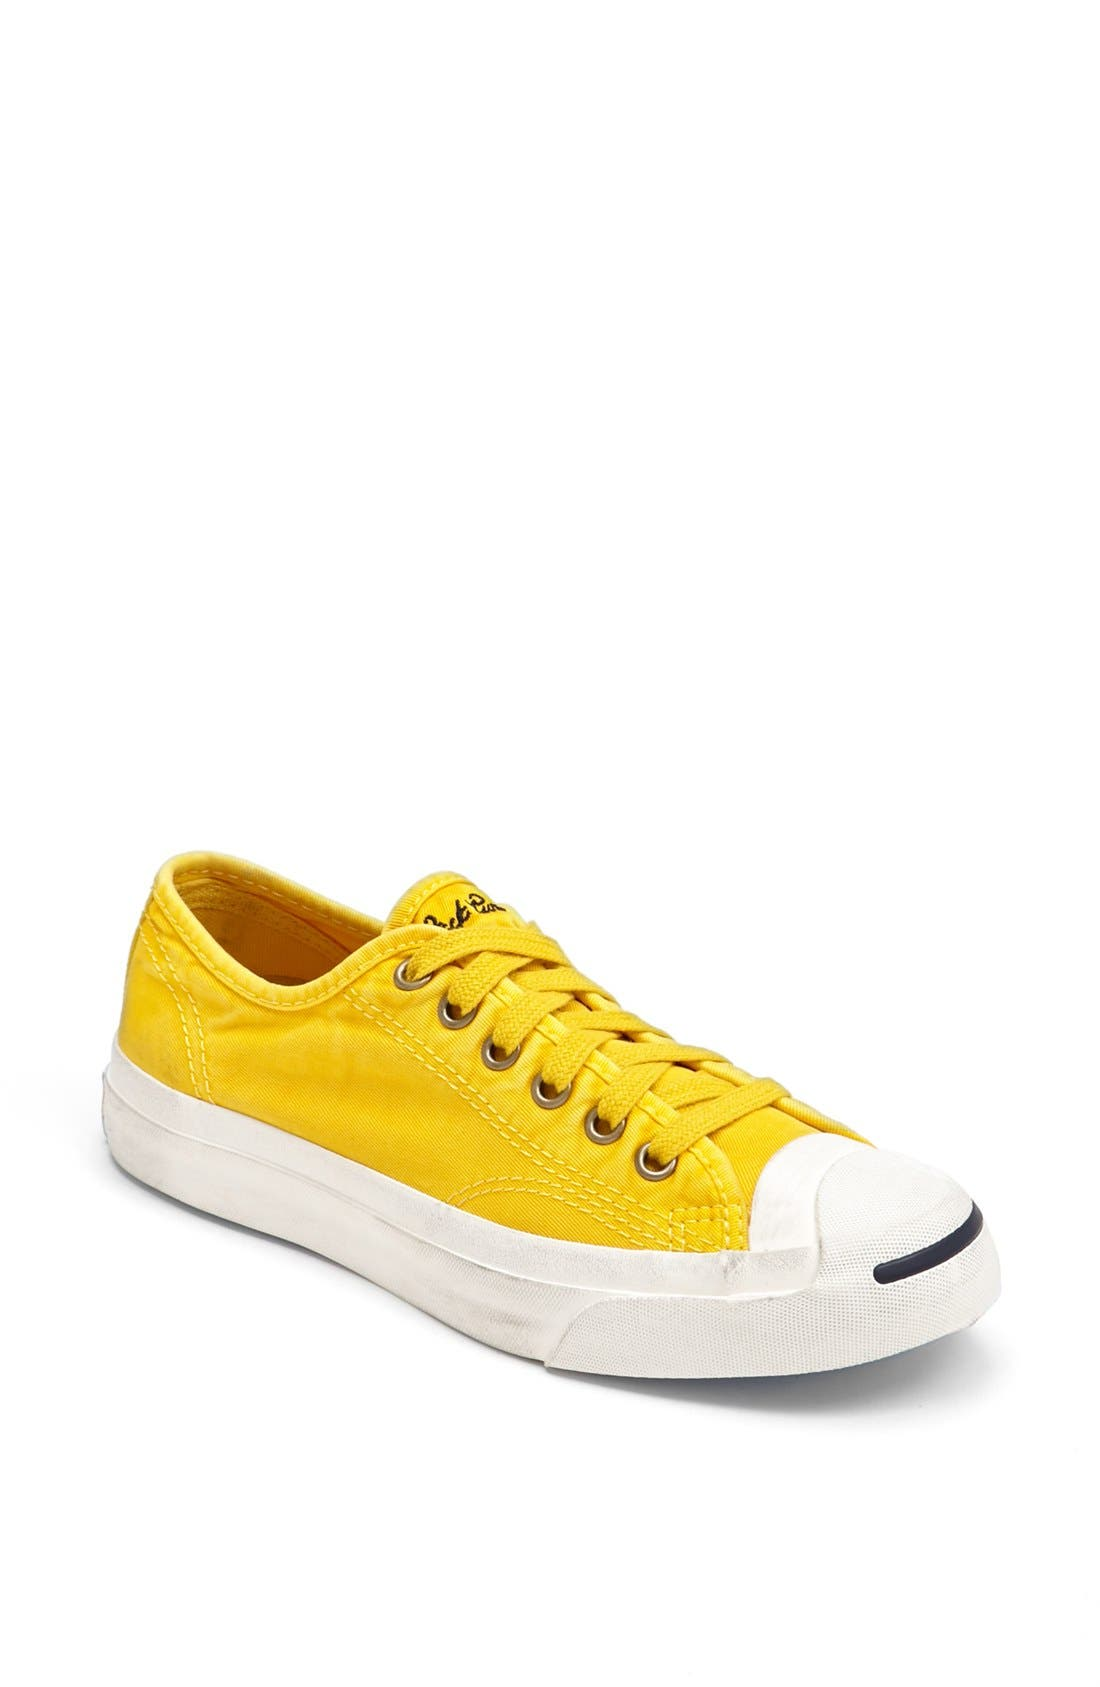 Alternate Image 1 Selected - Converse 'Jack Purcell' Sneaker (Women)